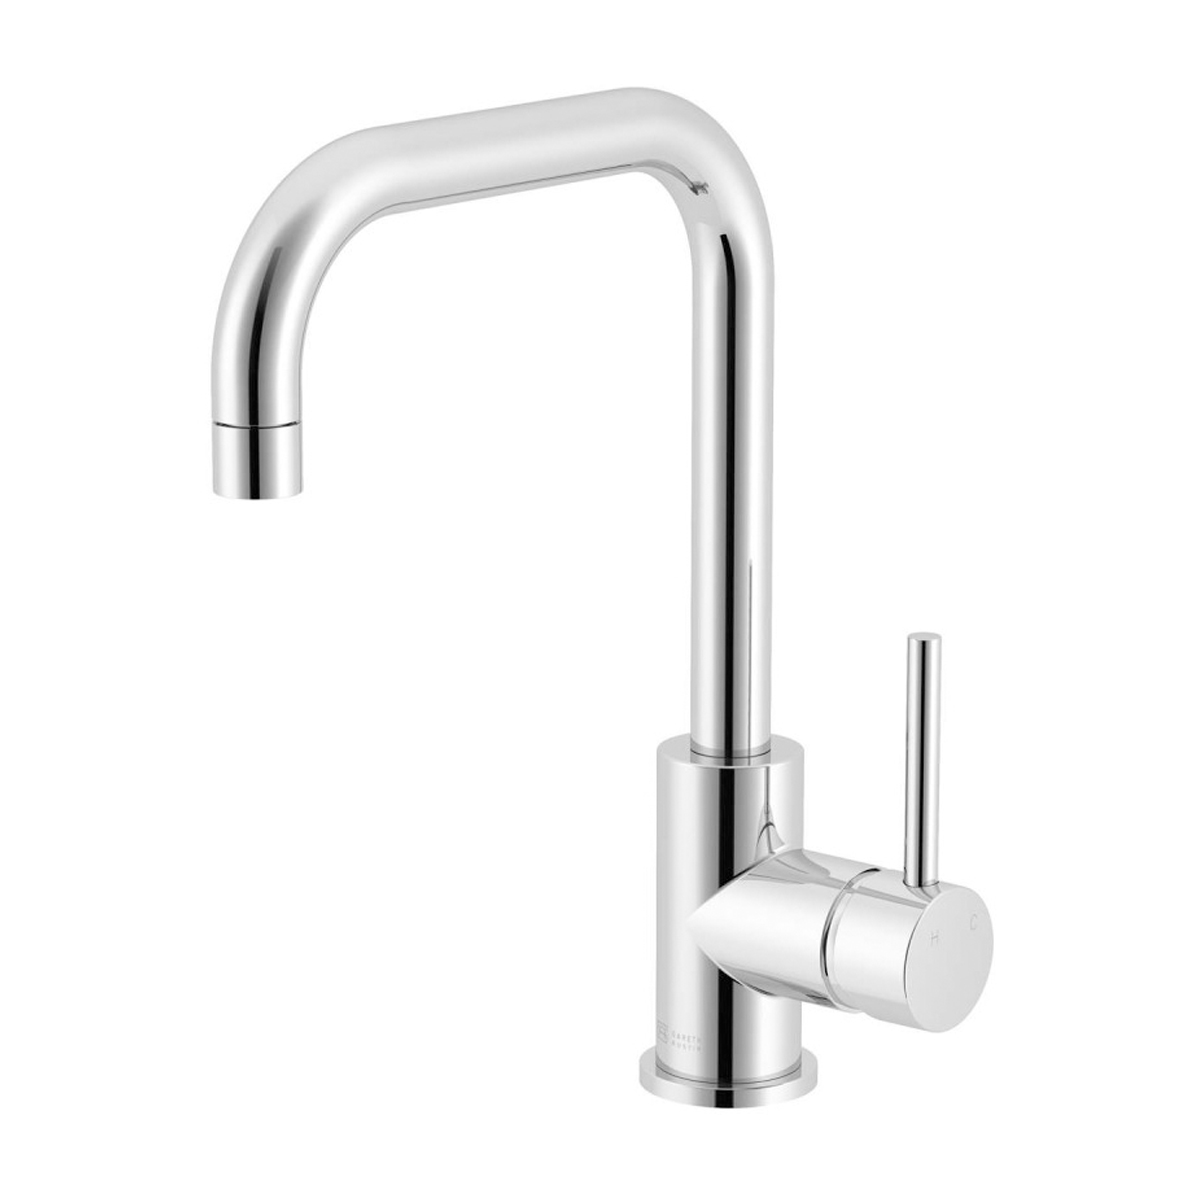 Abey 3K3 Lucia Square Sidelever Mixer Tap